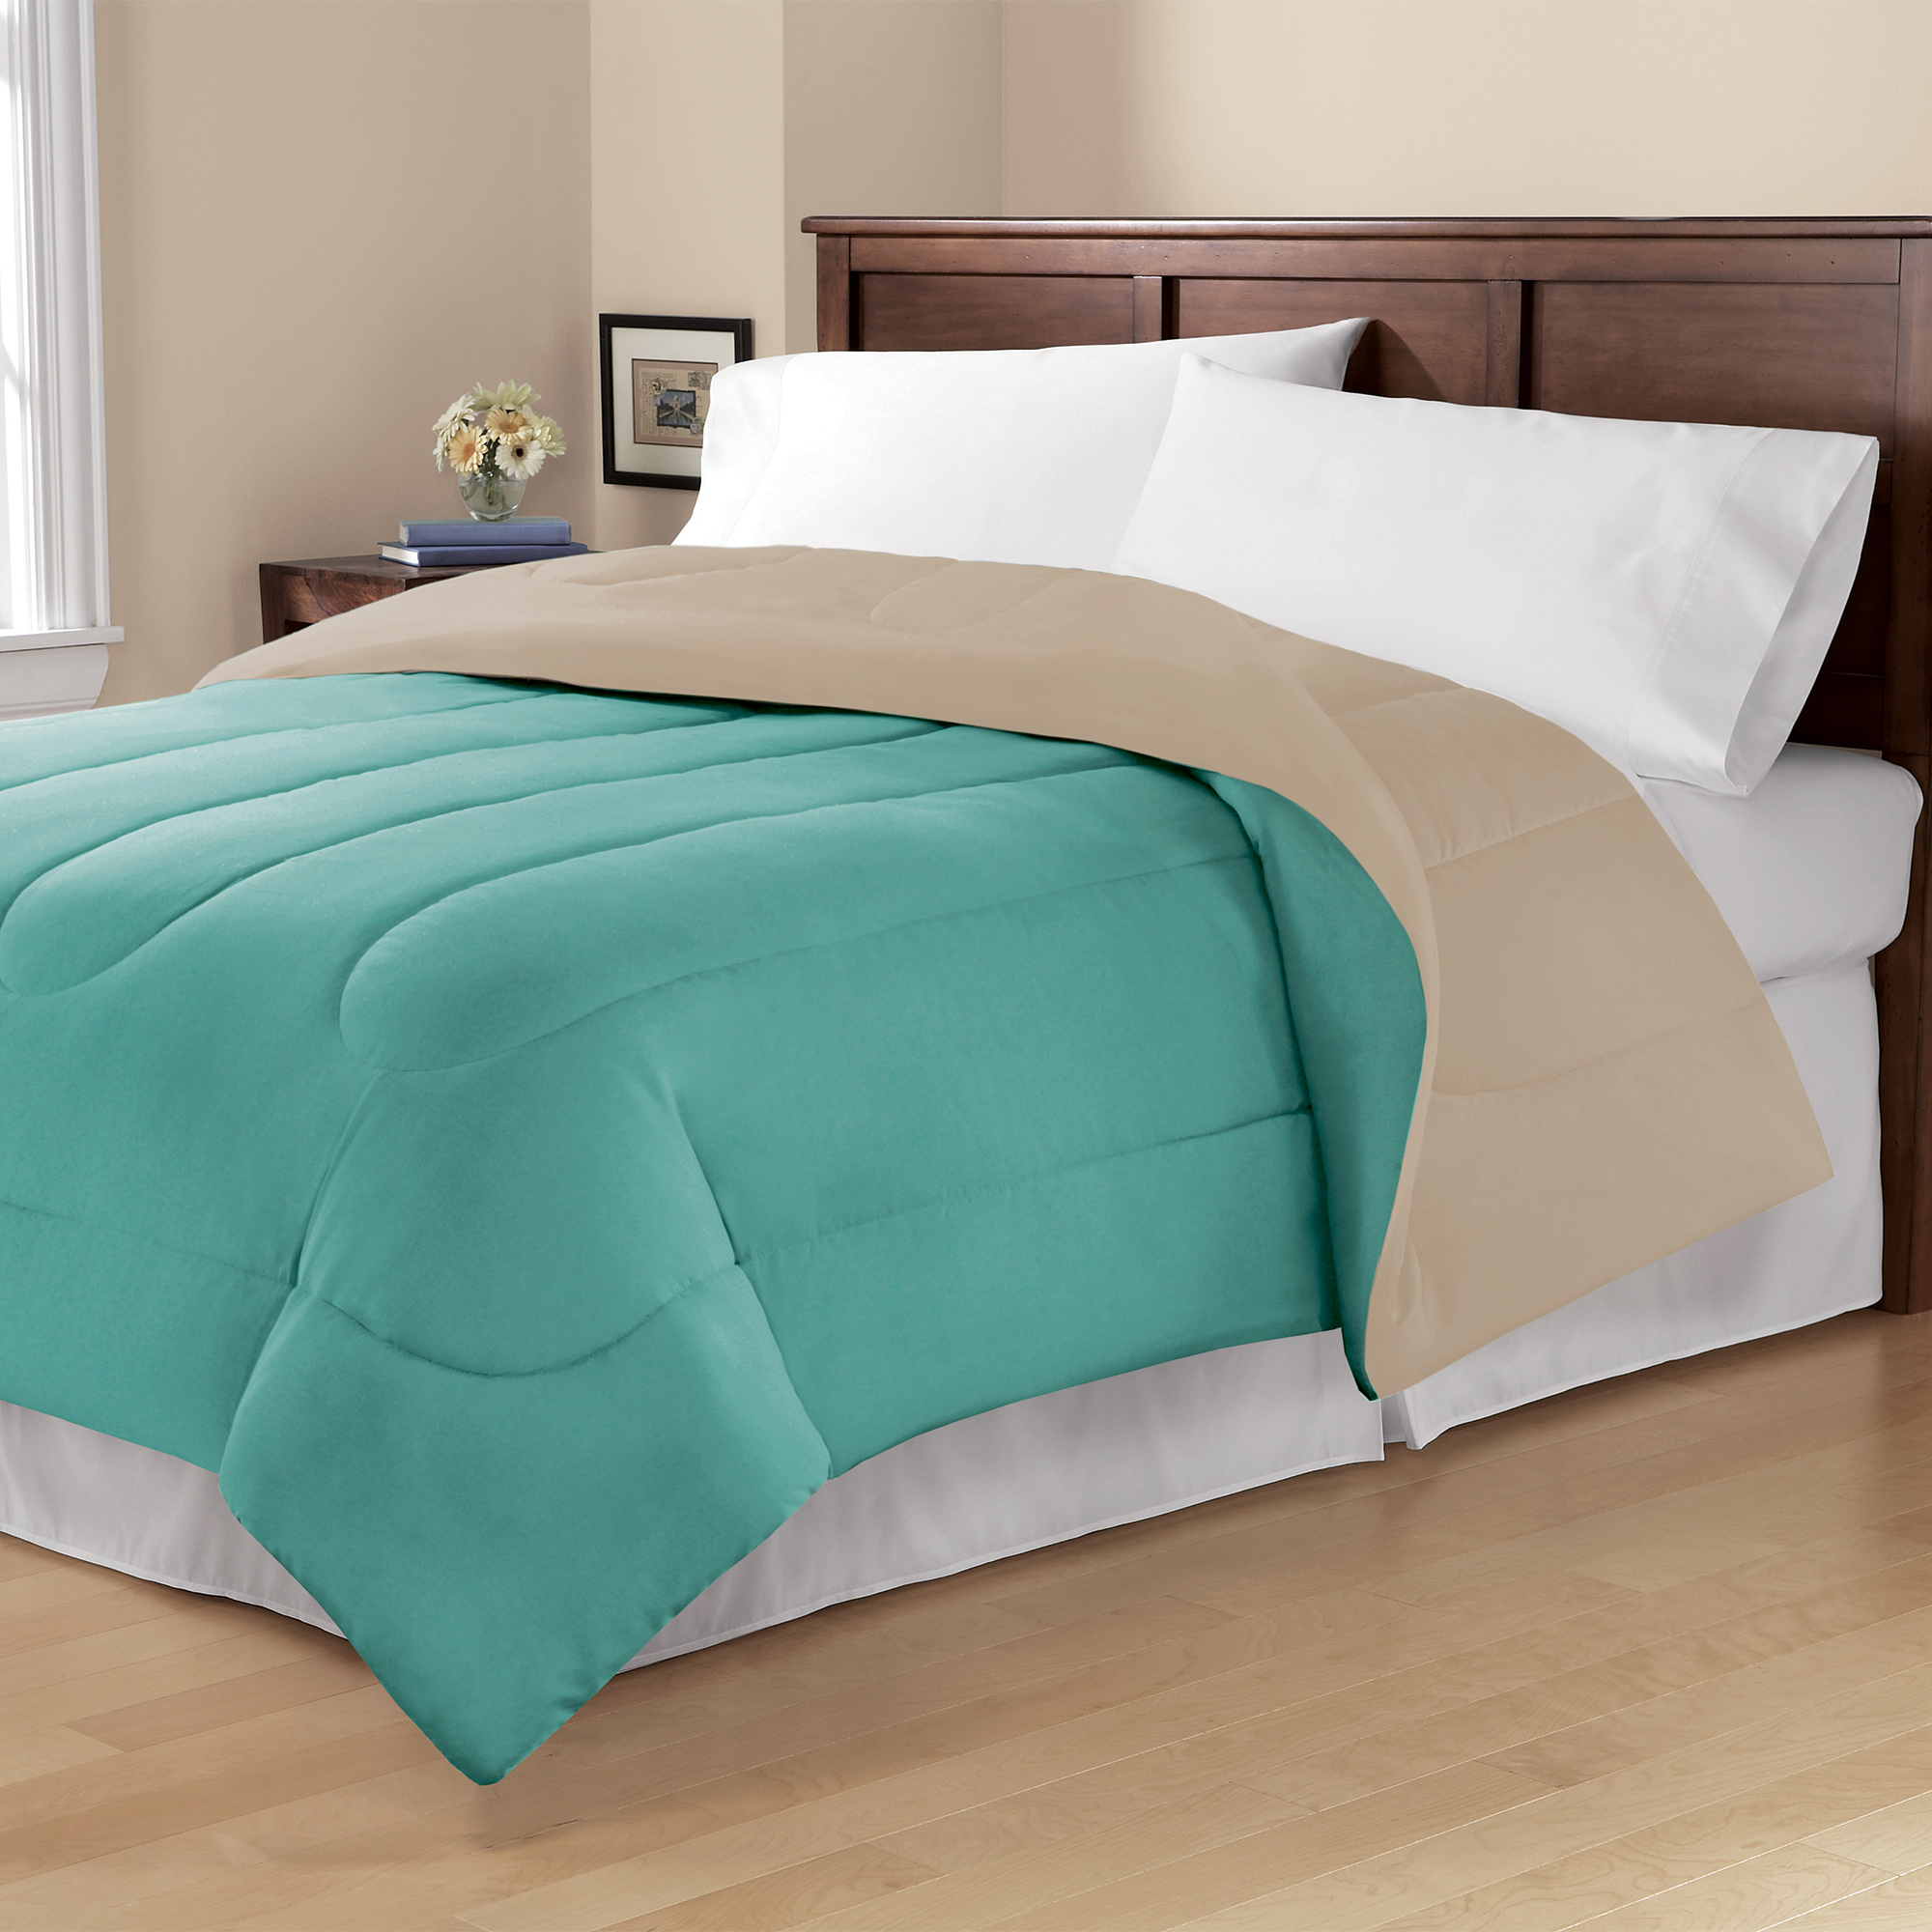 Mainstays Solid Reversible Bedding Comforter